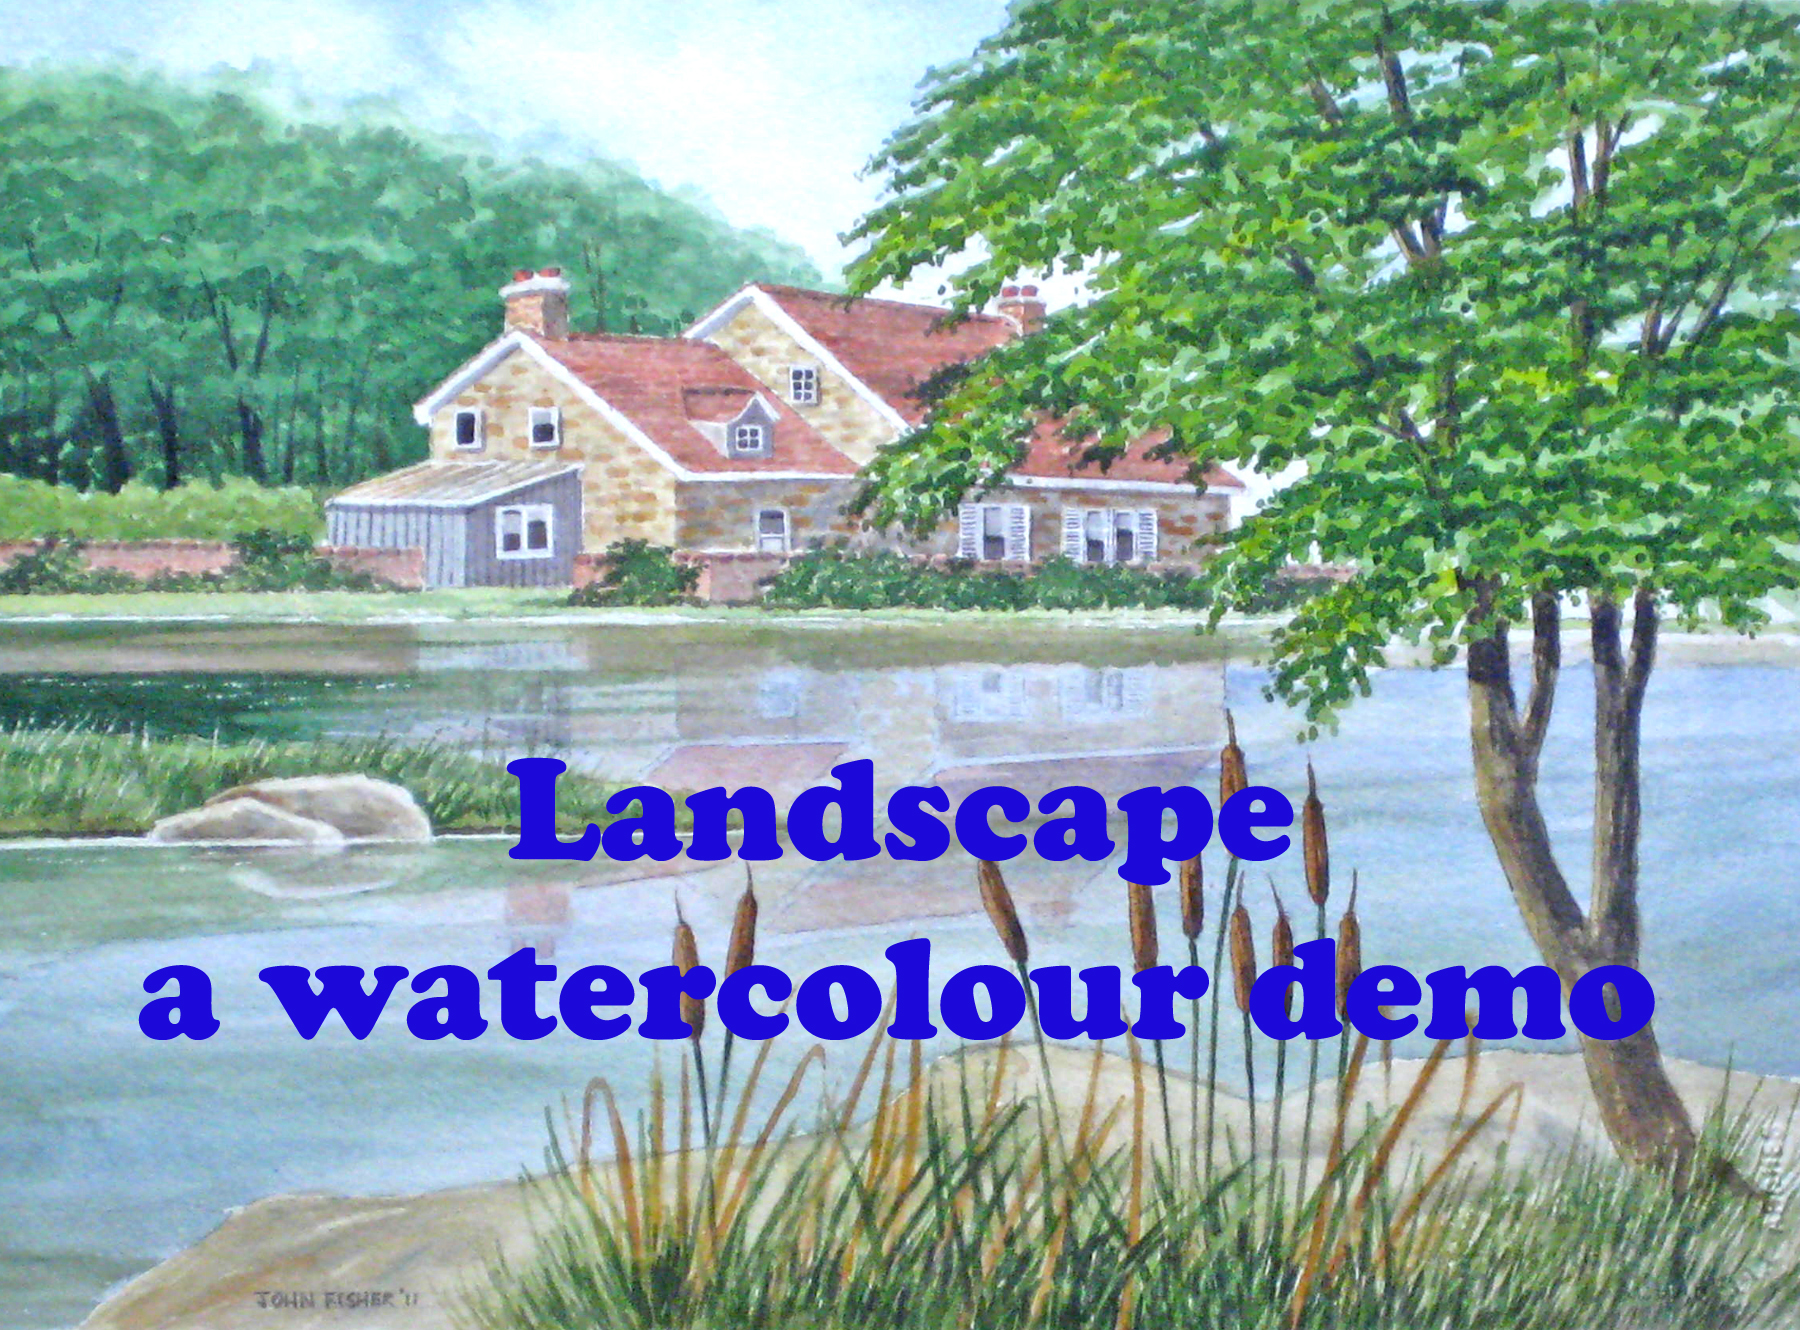 Drawn scenery water colour My Watercolor Paint Landscape a